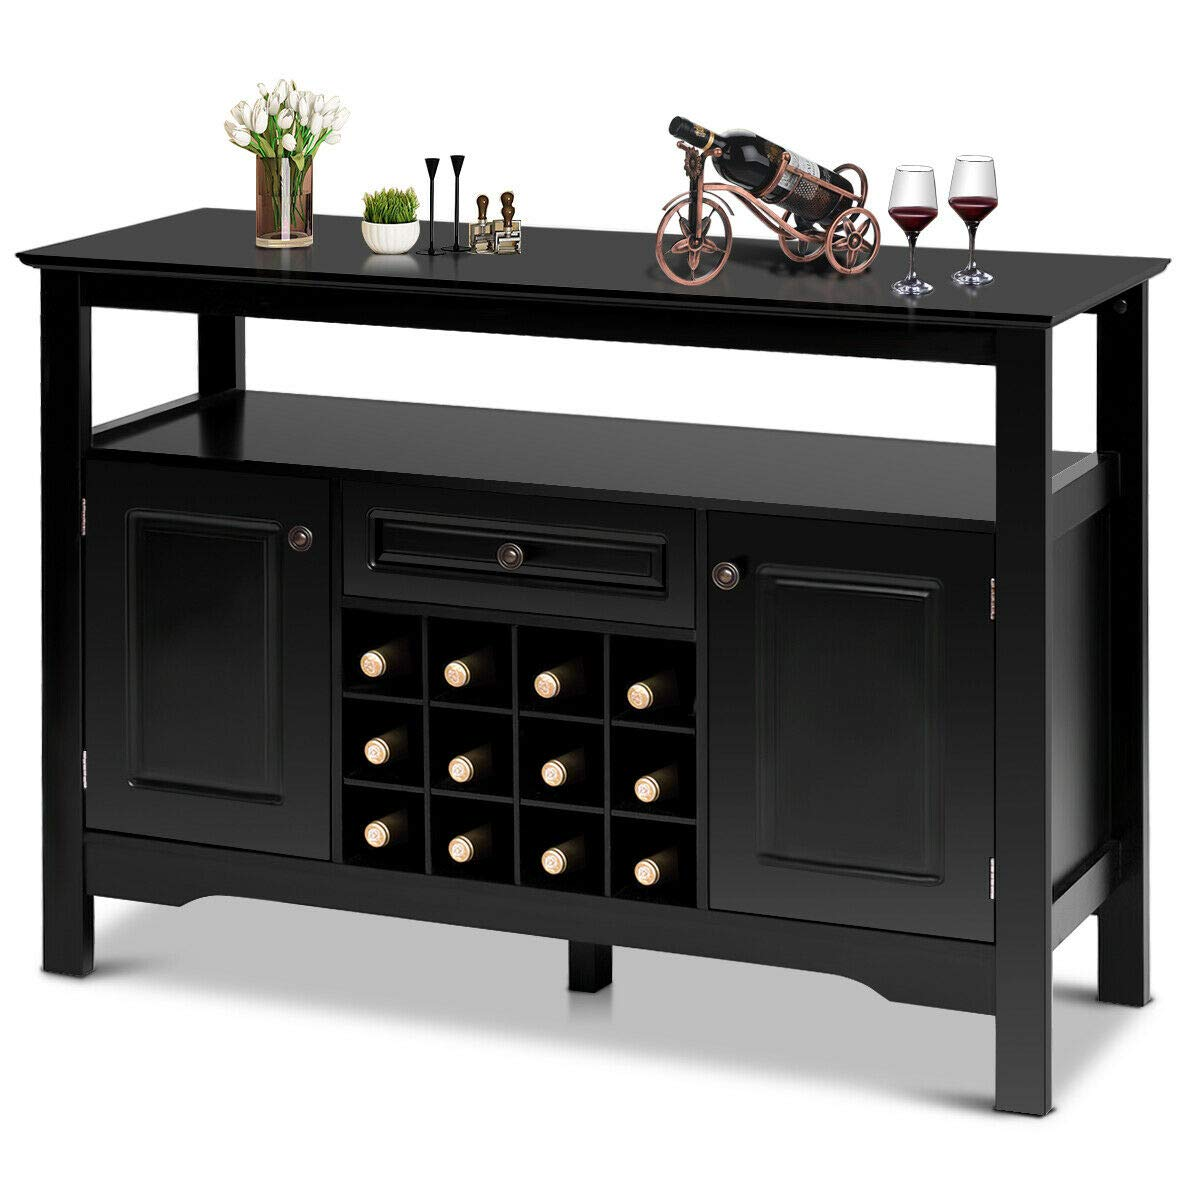 Giantex Buffet Server Wood Cabinet Sideboard Cupboard Table Kitchen Dining  Room Restaurant Furniture Wine Cabinet with Wine Rack Open Shelf Drawer ...